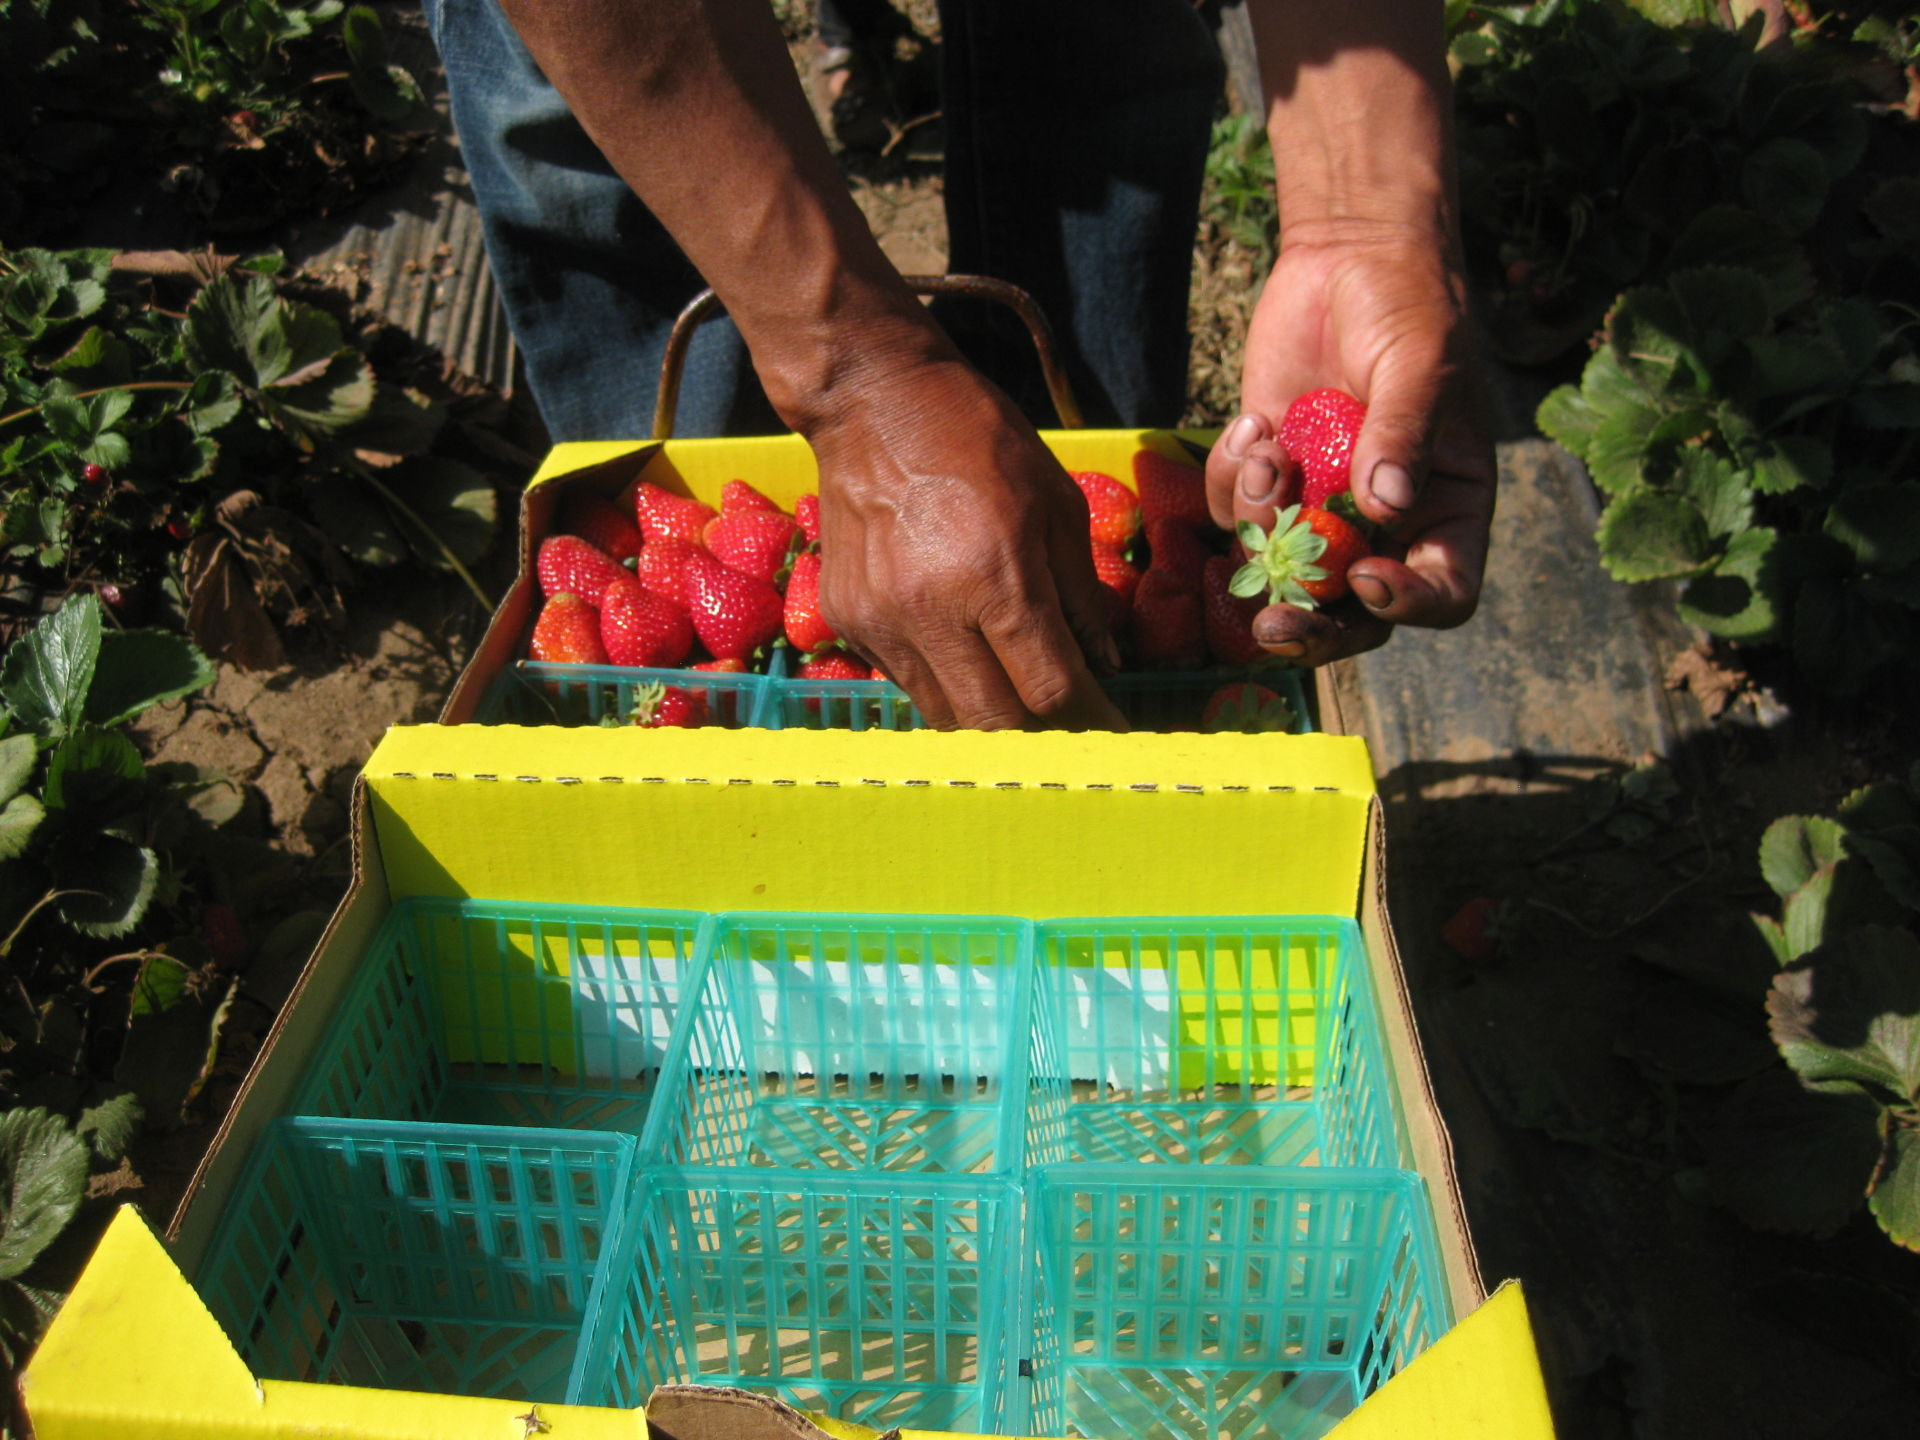 A field worker fills a box of strawberries in Watsonville, Calif. Berry pickers say they're earning less money this year. Because of the drought, there's less fruit to pick, and the fruit that is there is smaller, which means it takes longer to fill a box. Pickers are paid by the box.